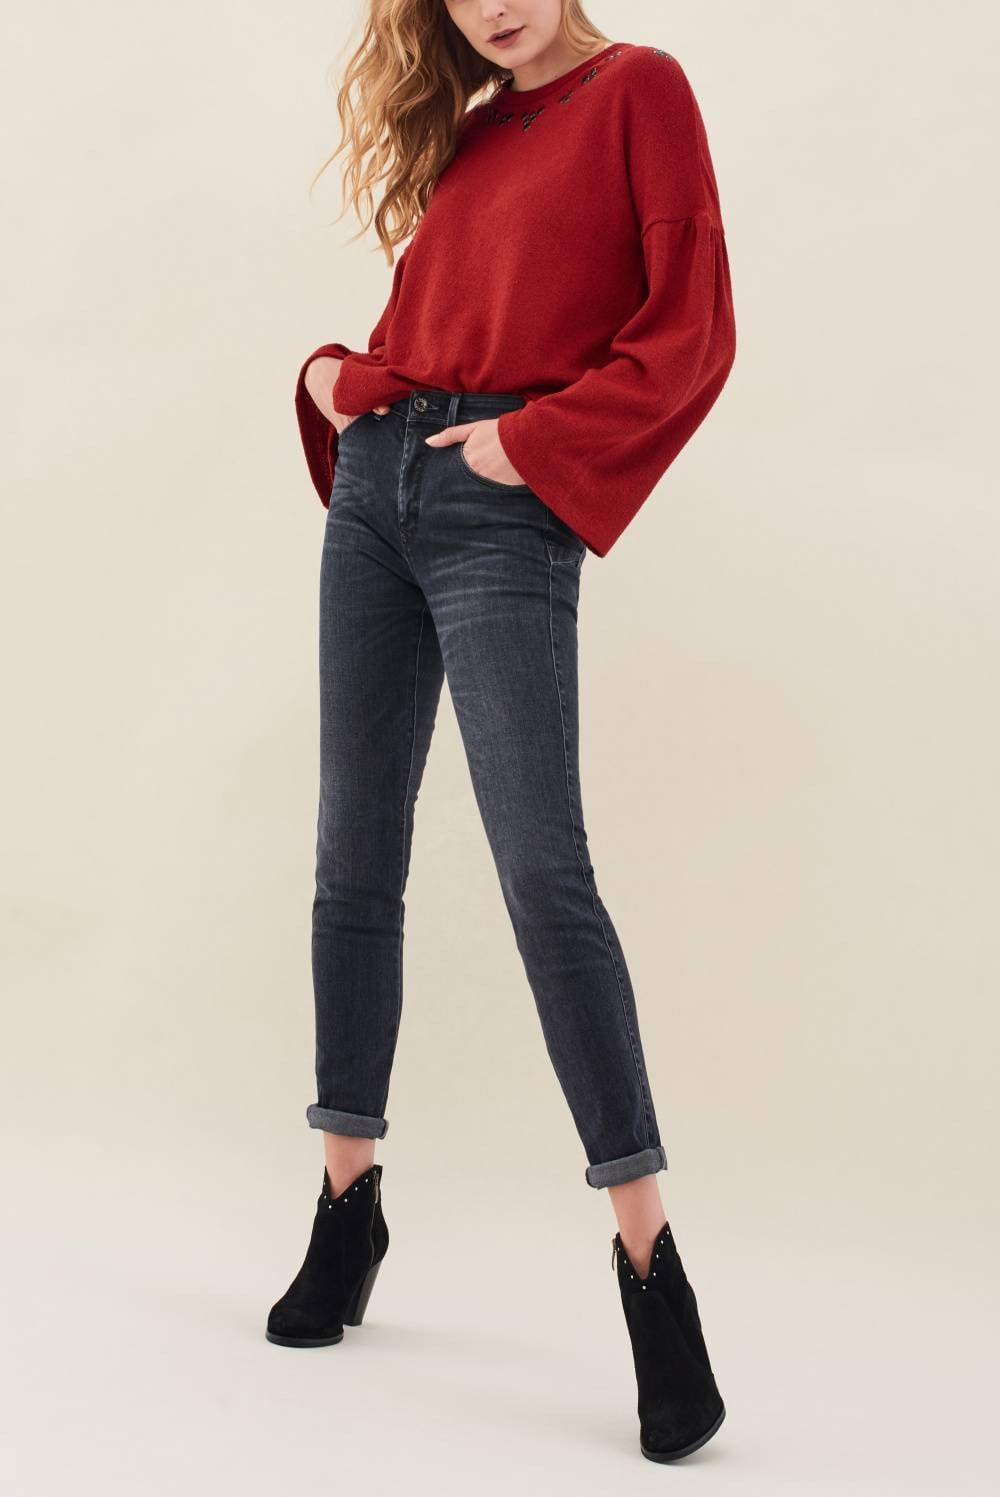 Sweatshirt with detail on the neckline - Salsa